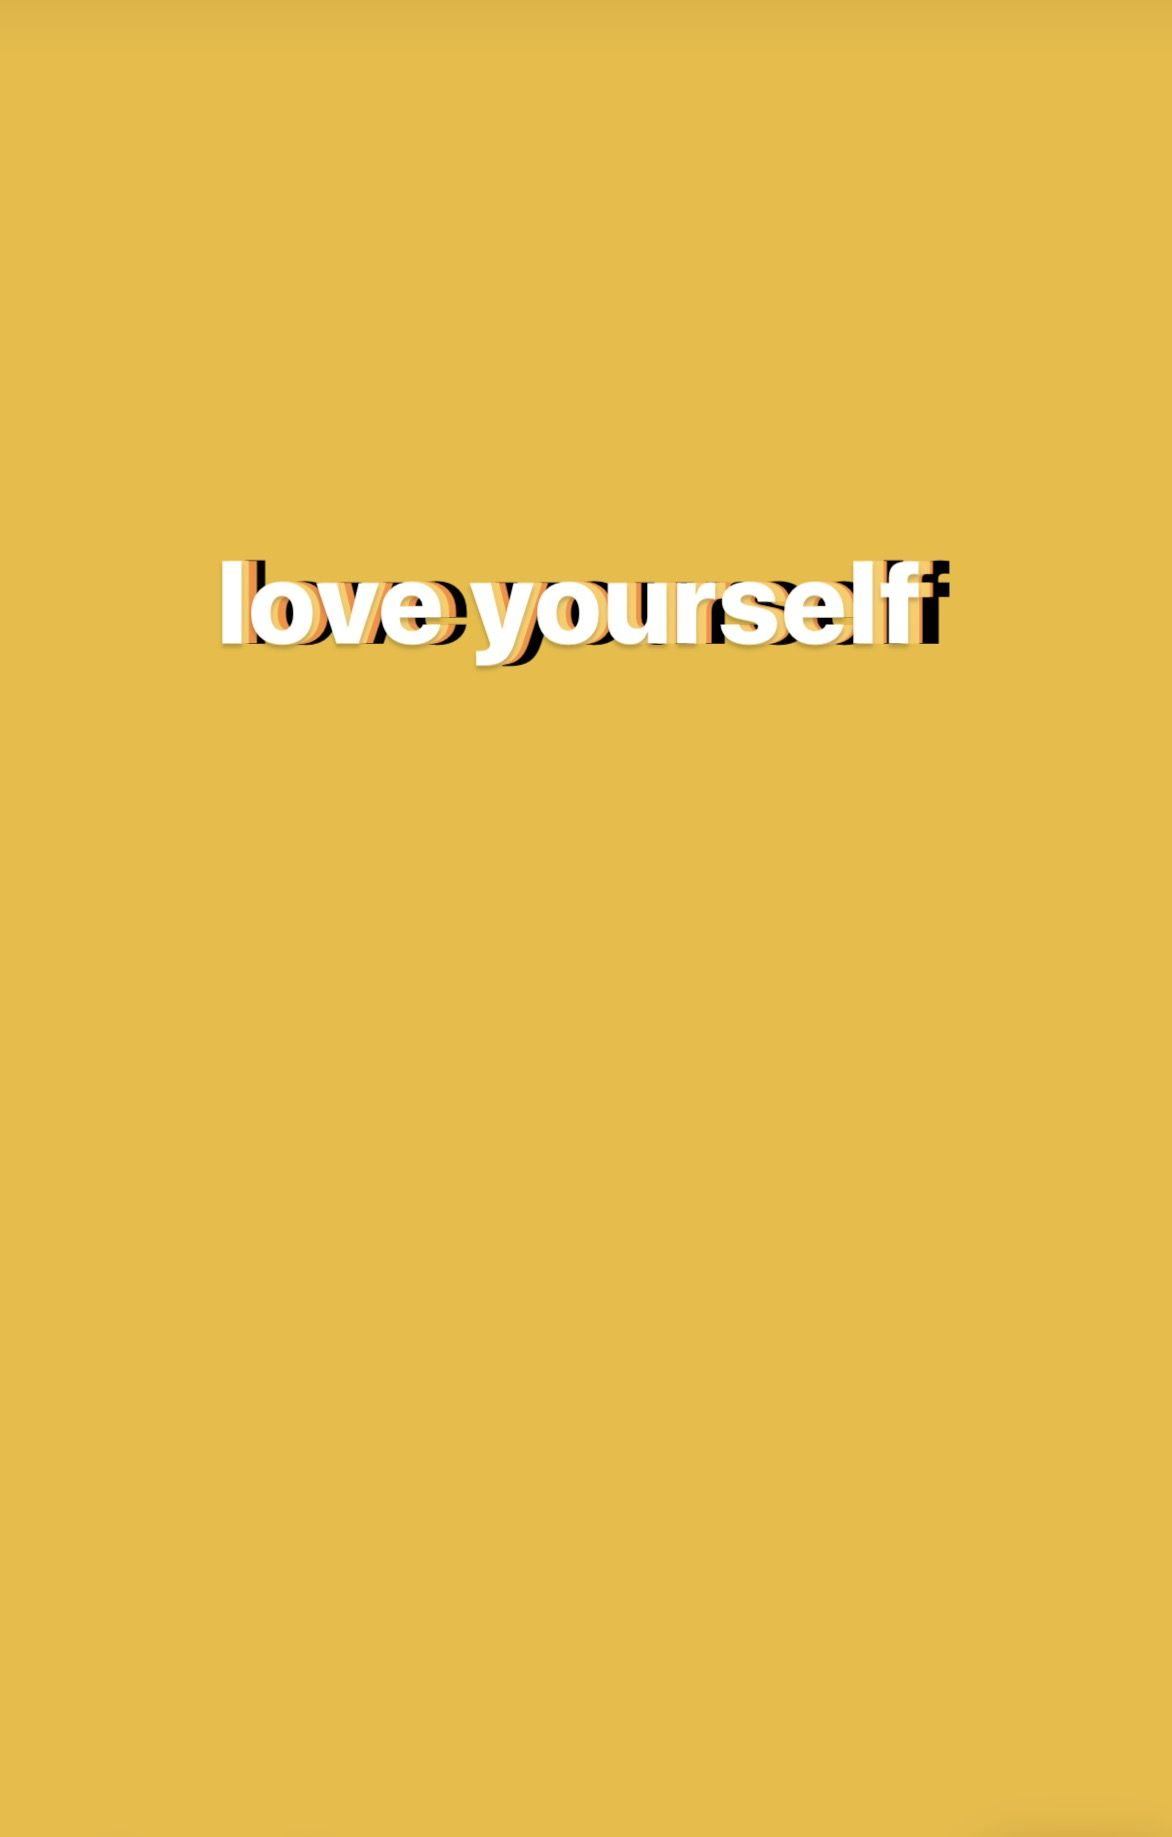 yellow aesthetic quotes top yellow aesthetic